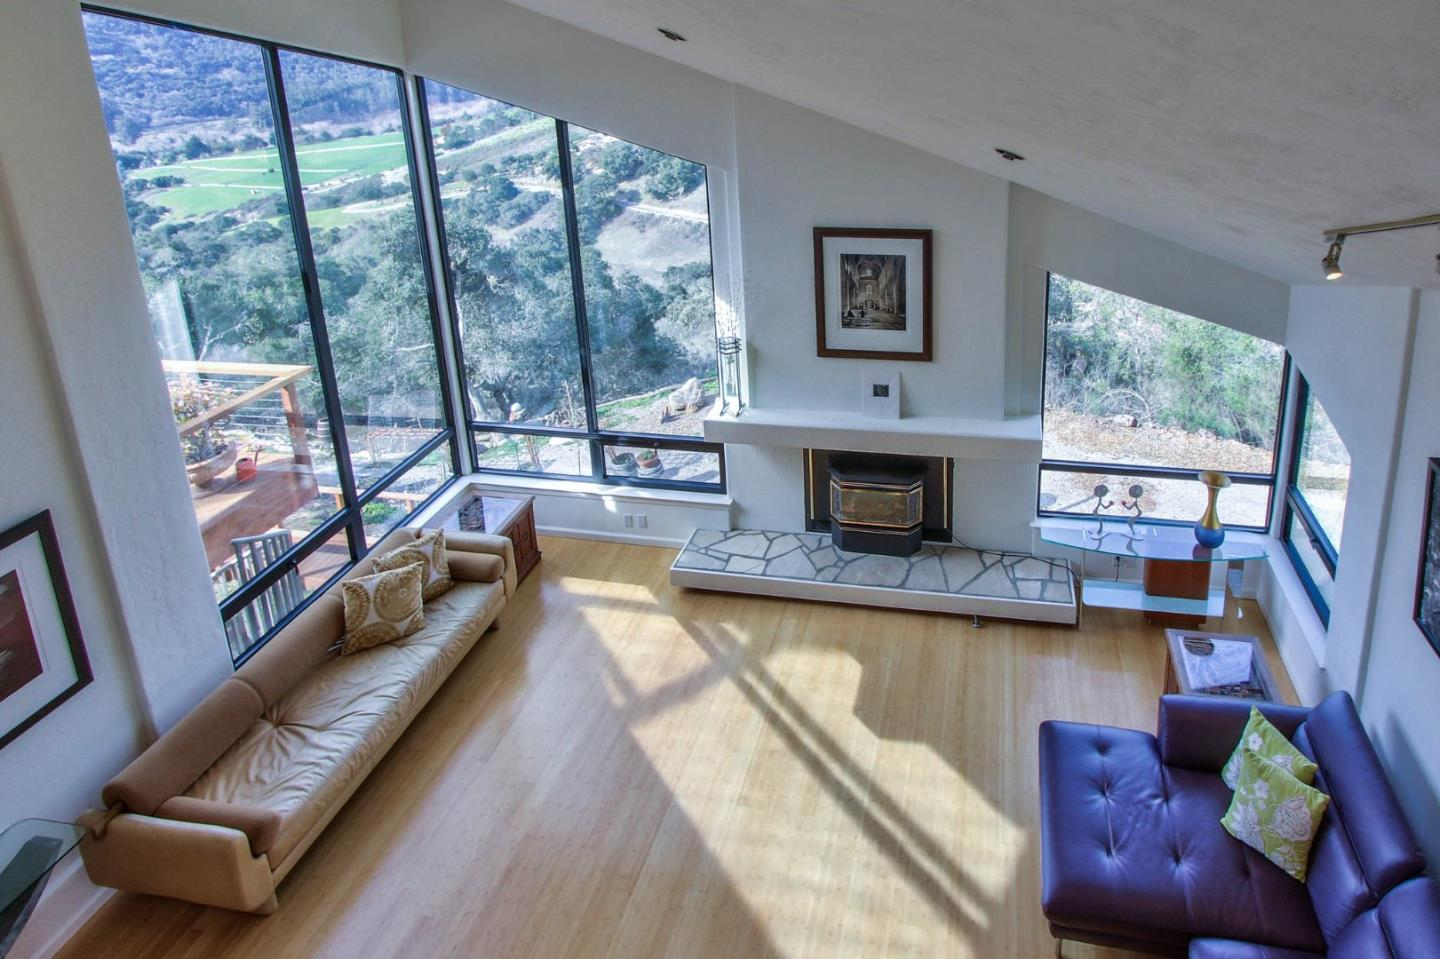 5 Southview Lane, Carmel Valley, CA, 93924 | Better Homes and ...